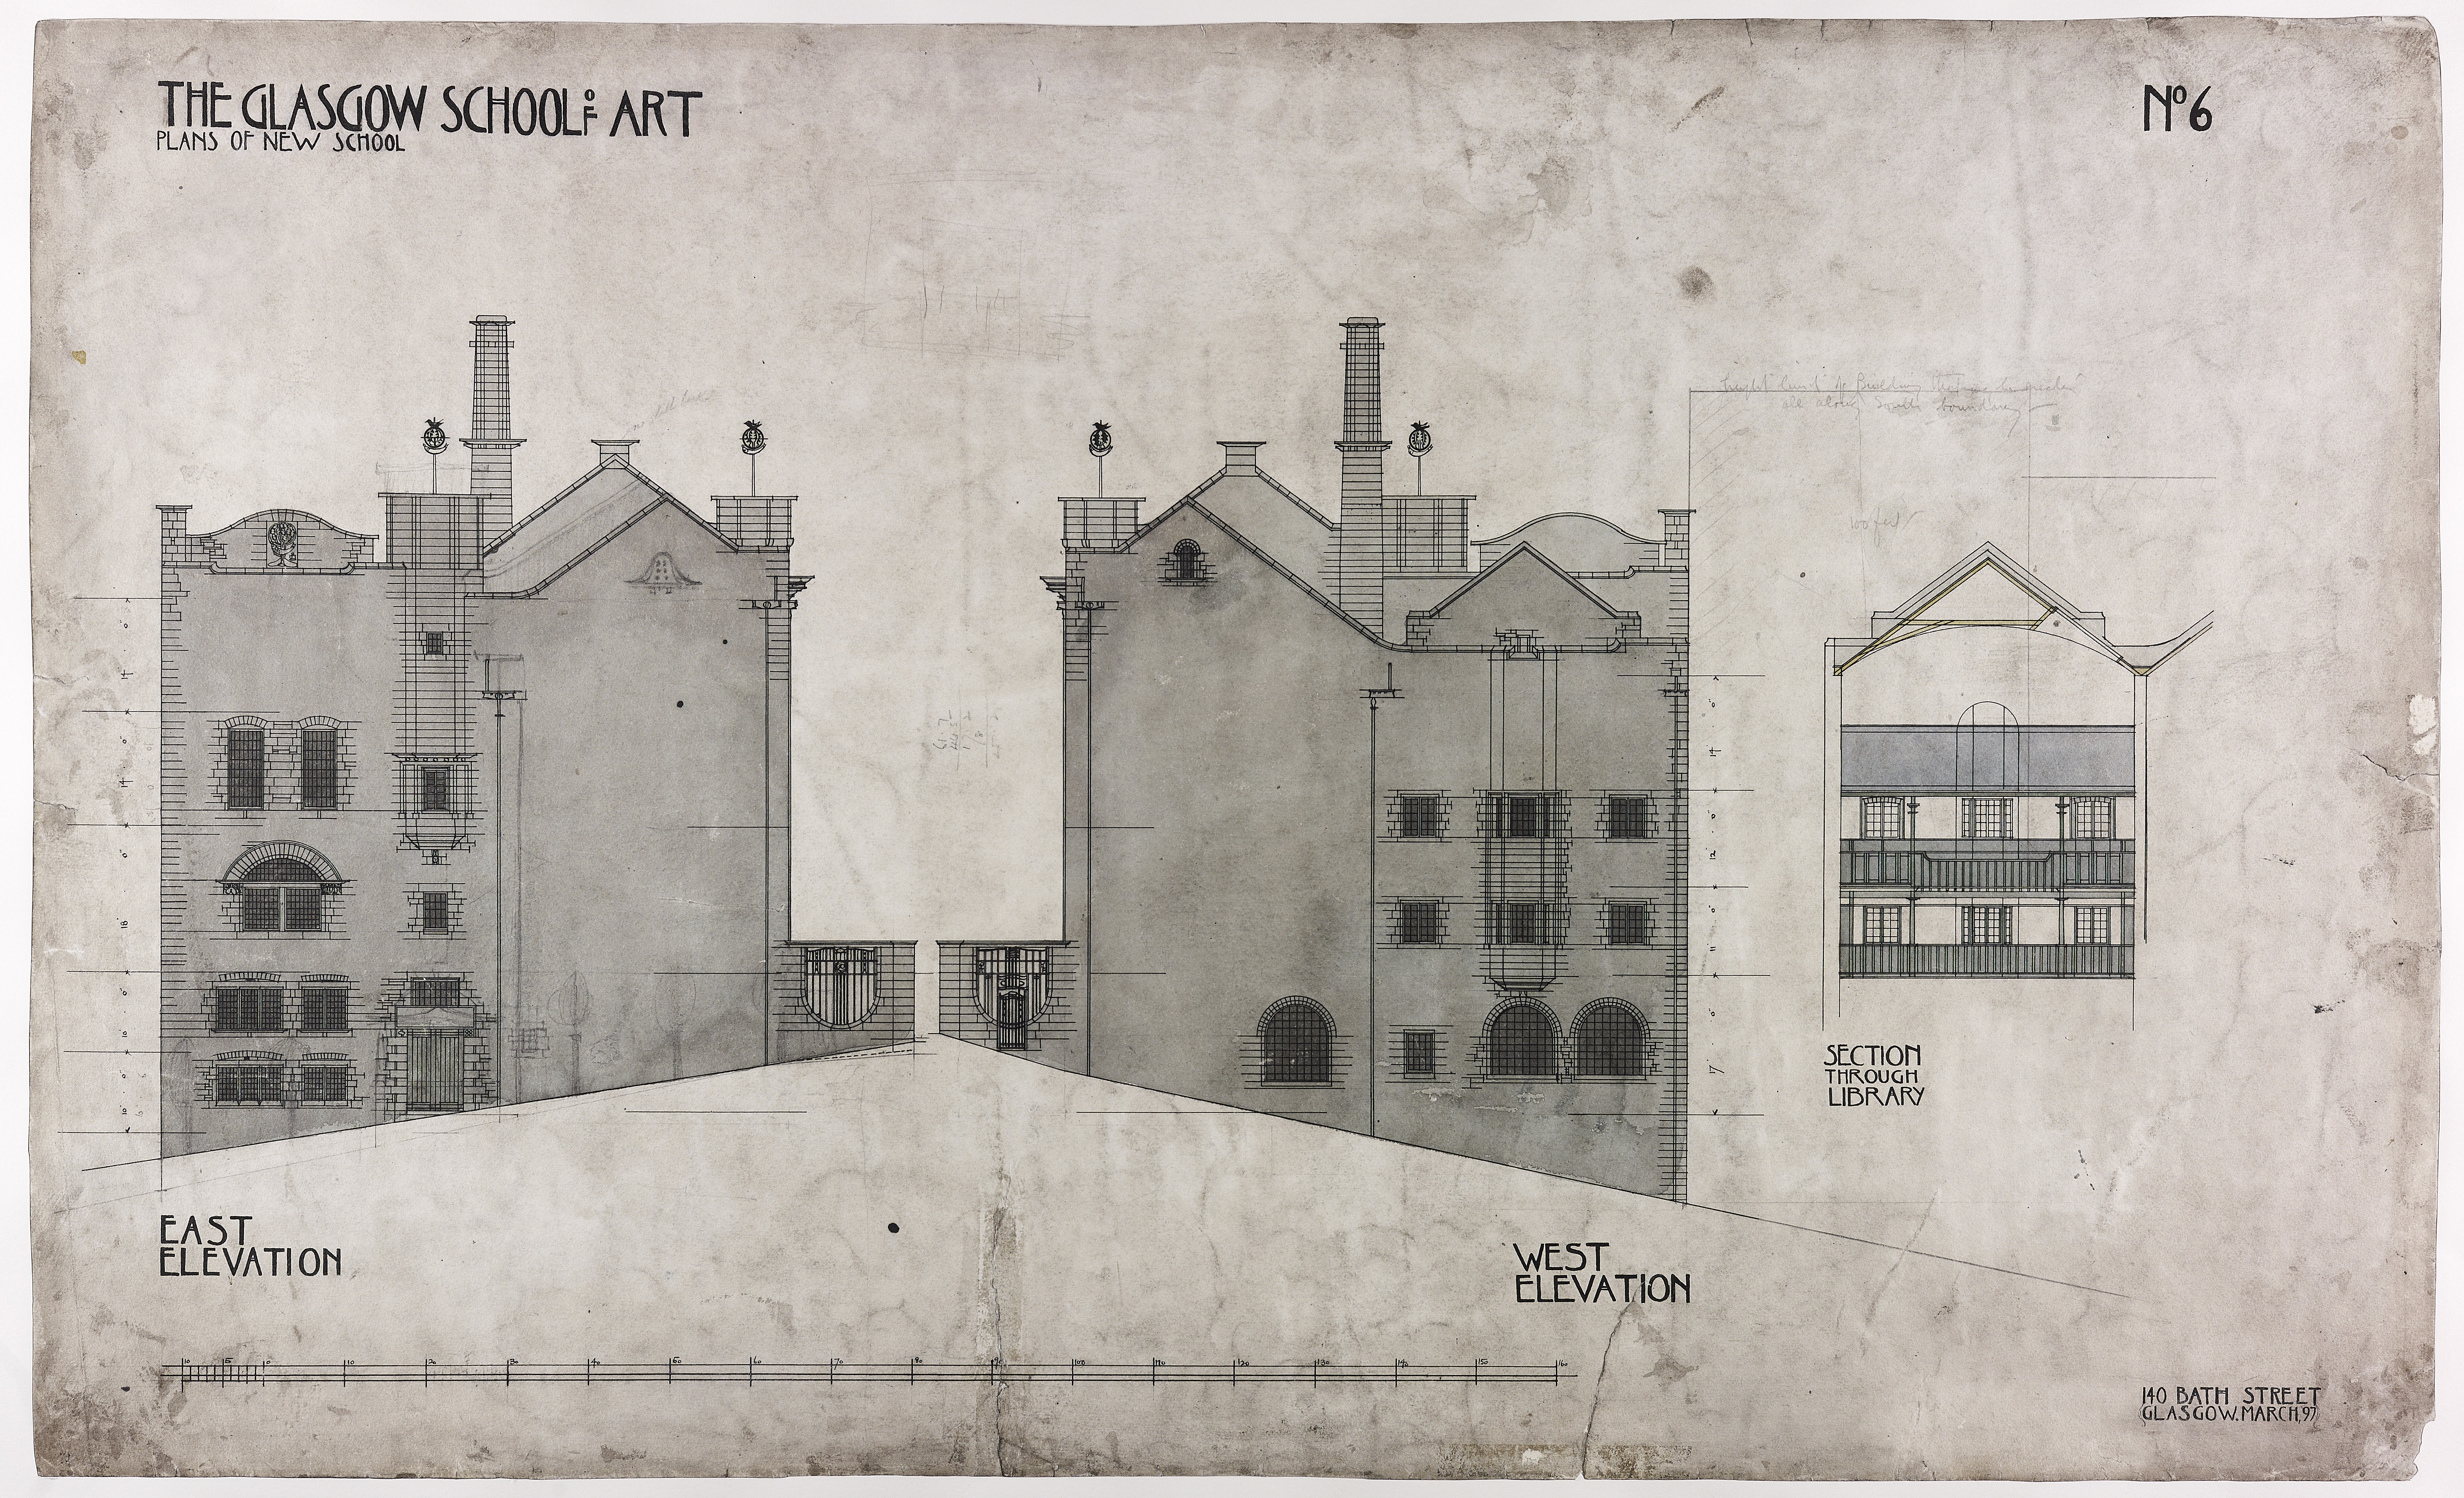 East-west elevation of the Mackintosh Building, Charles Rennie Mackintosh, 1897